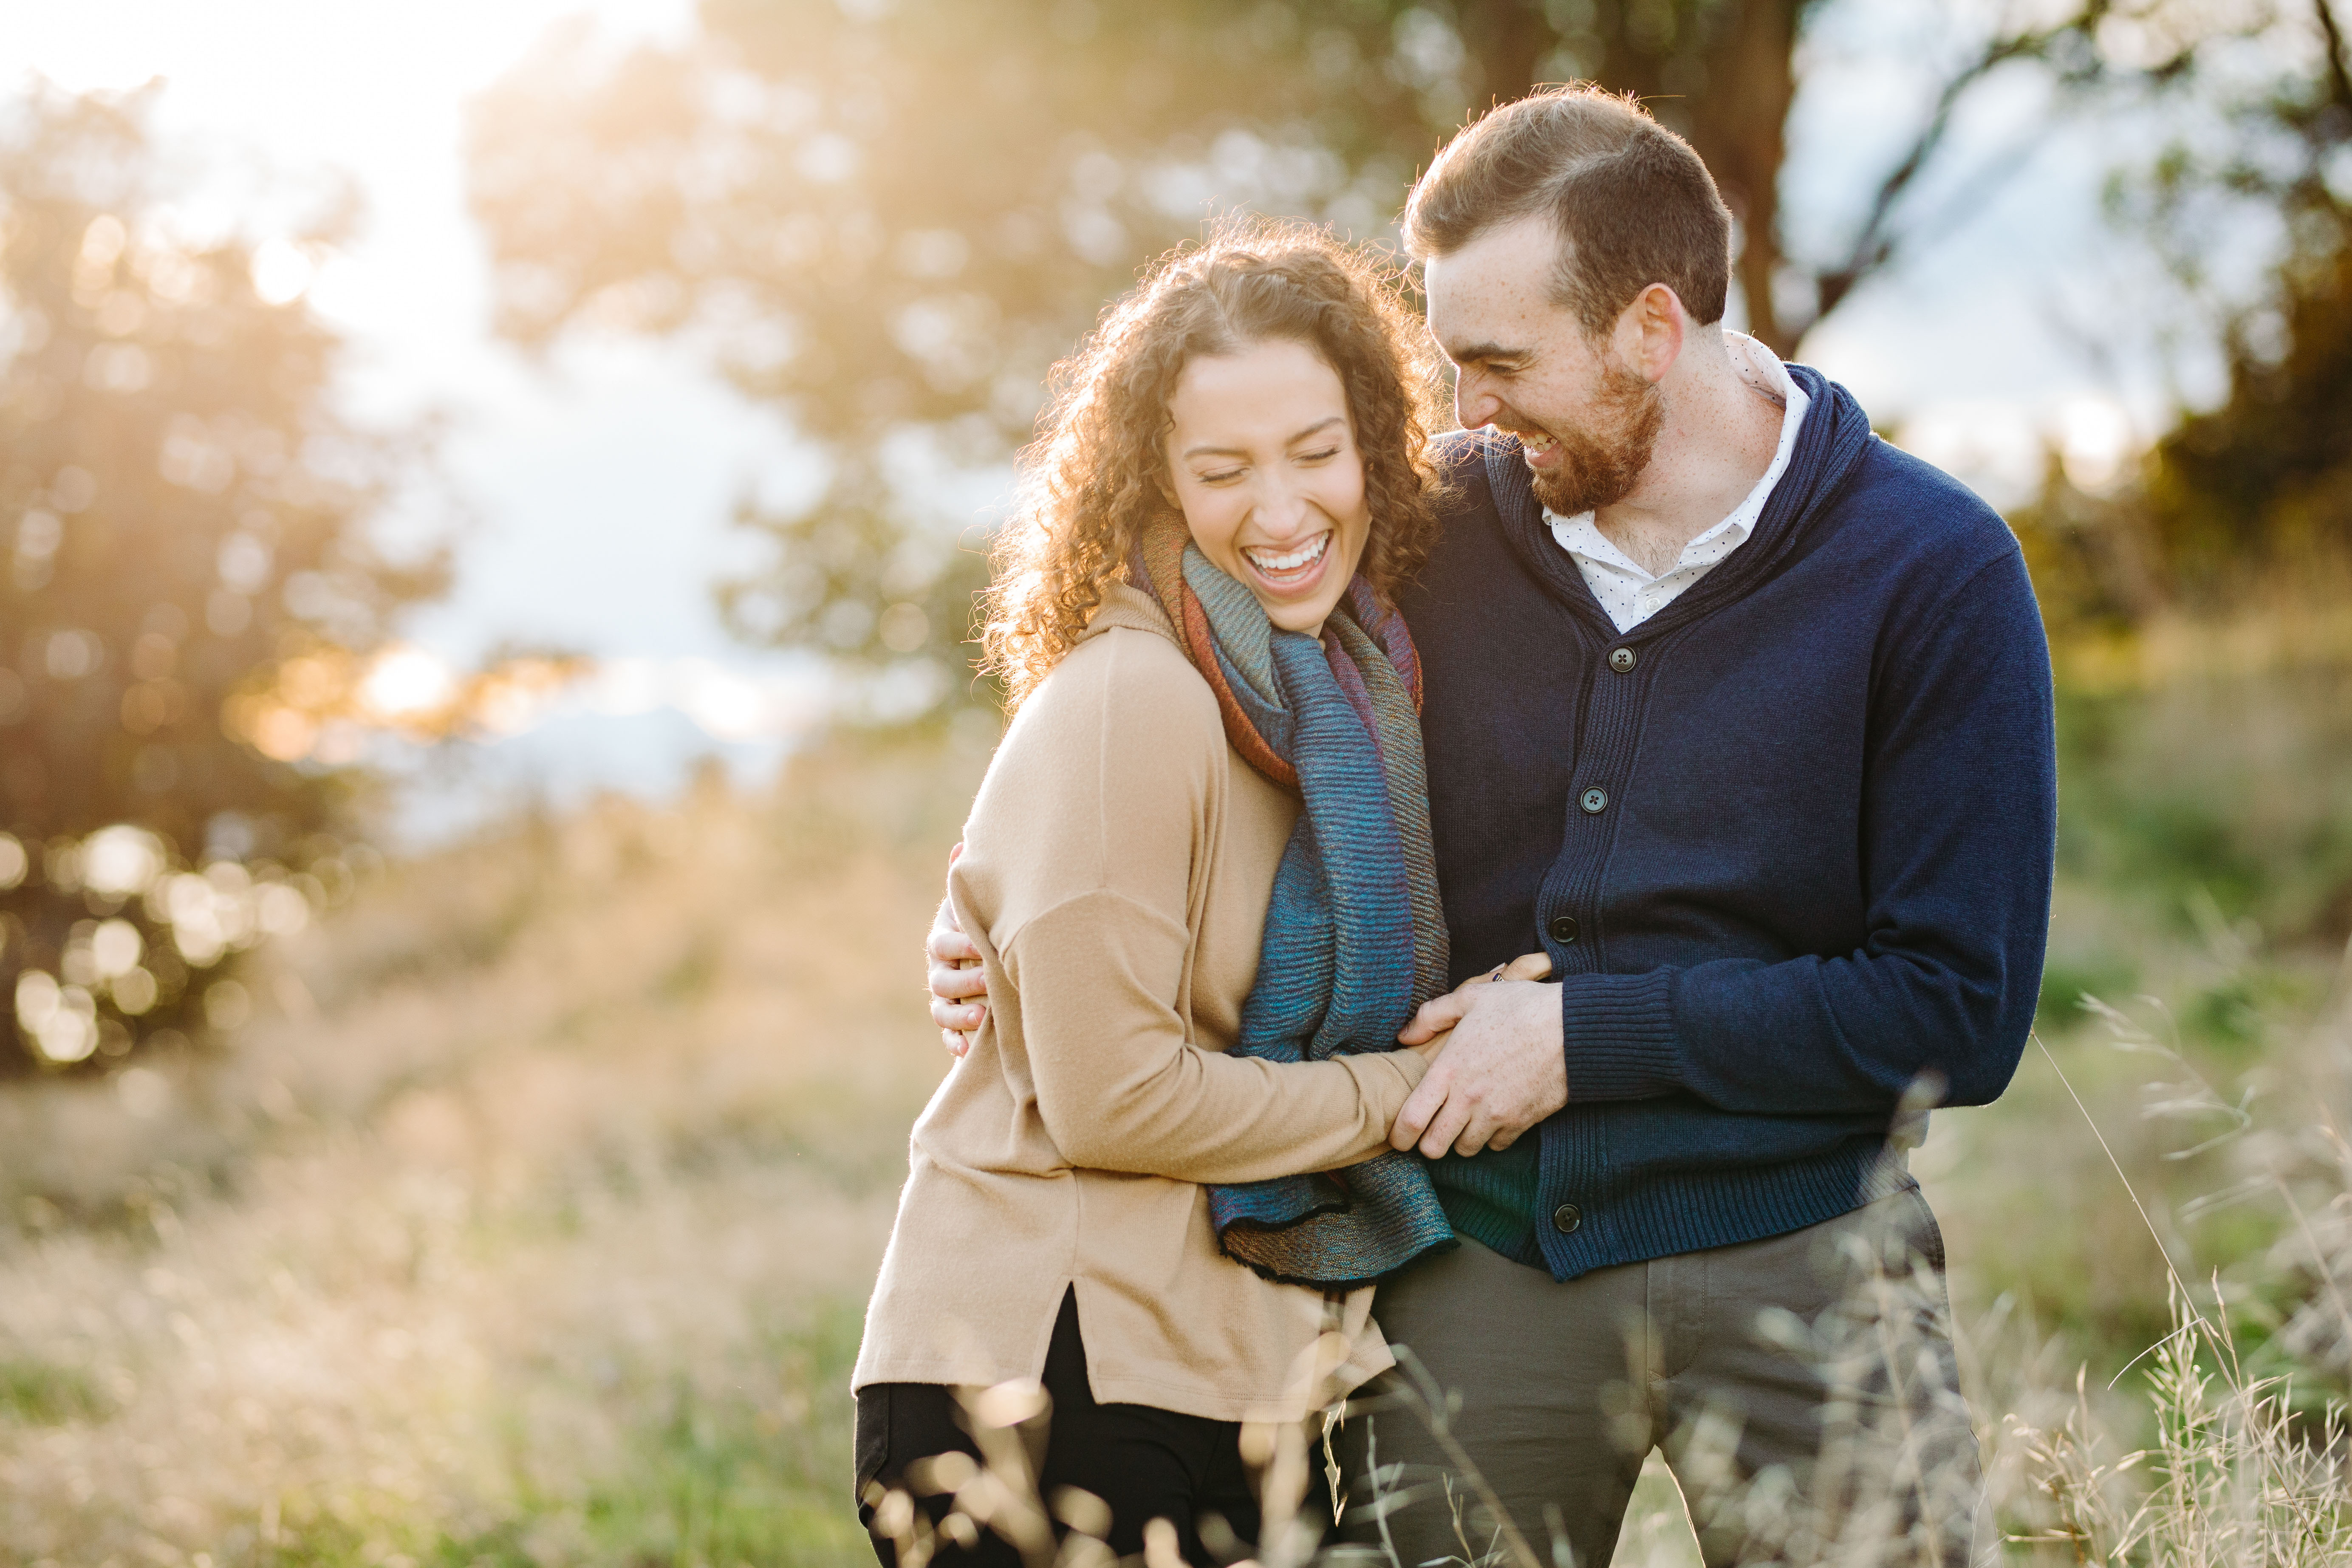 Fall engagement photo of laughing couple - photo by Cameron Zegers Photography